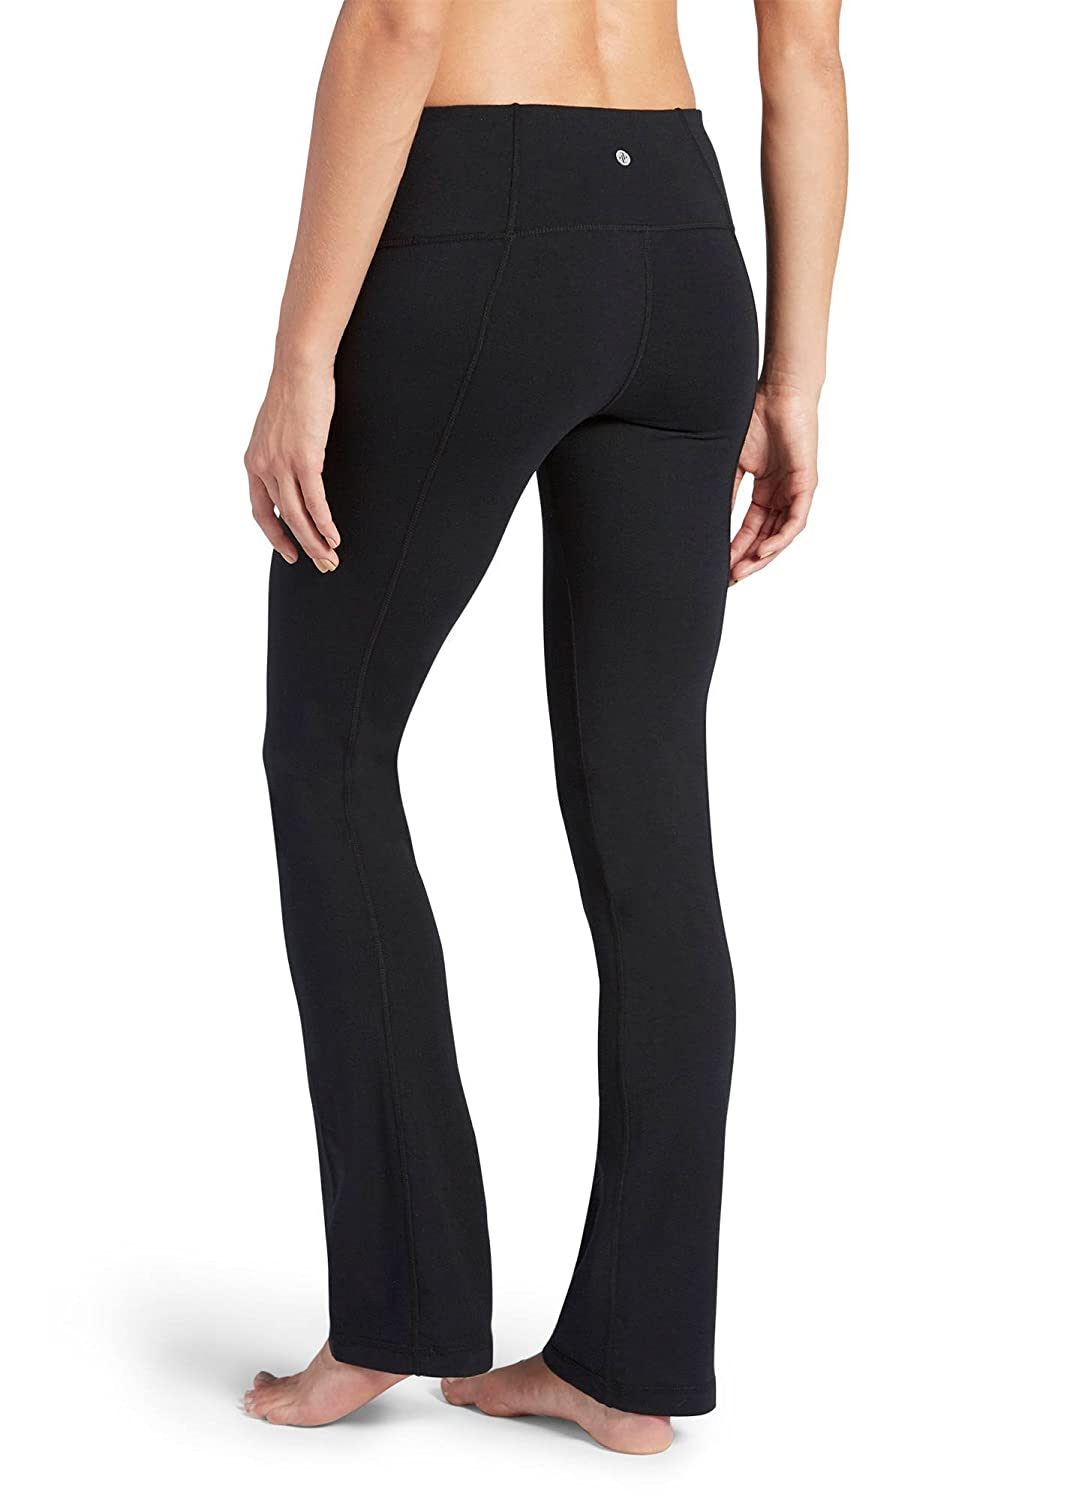 f7d4a98d8f76ed Jockey Women s Activewear Cotton Stretch Slim Bootleg Pant at Amazon Women s  Clothing store